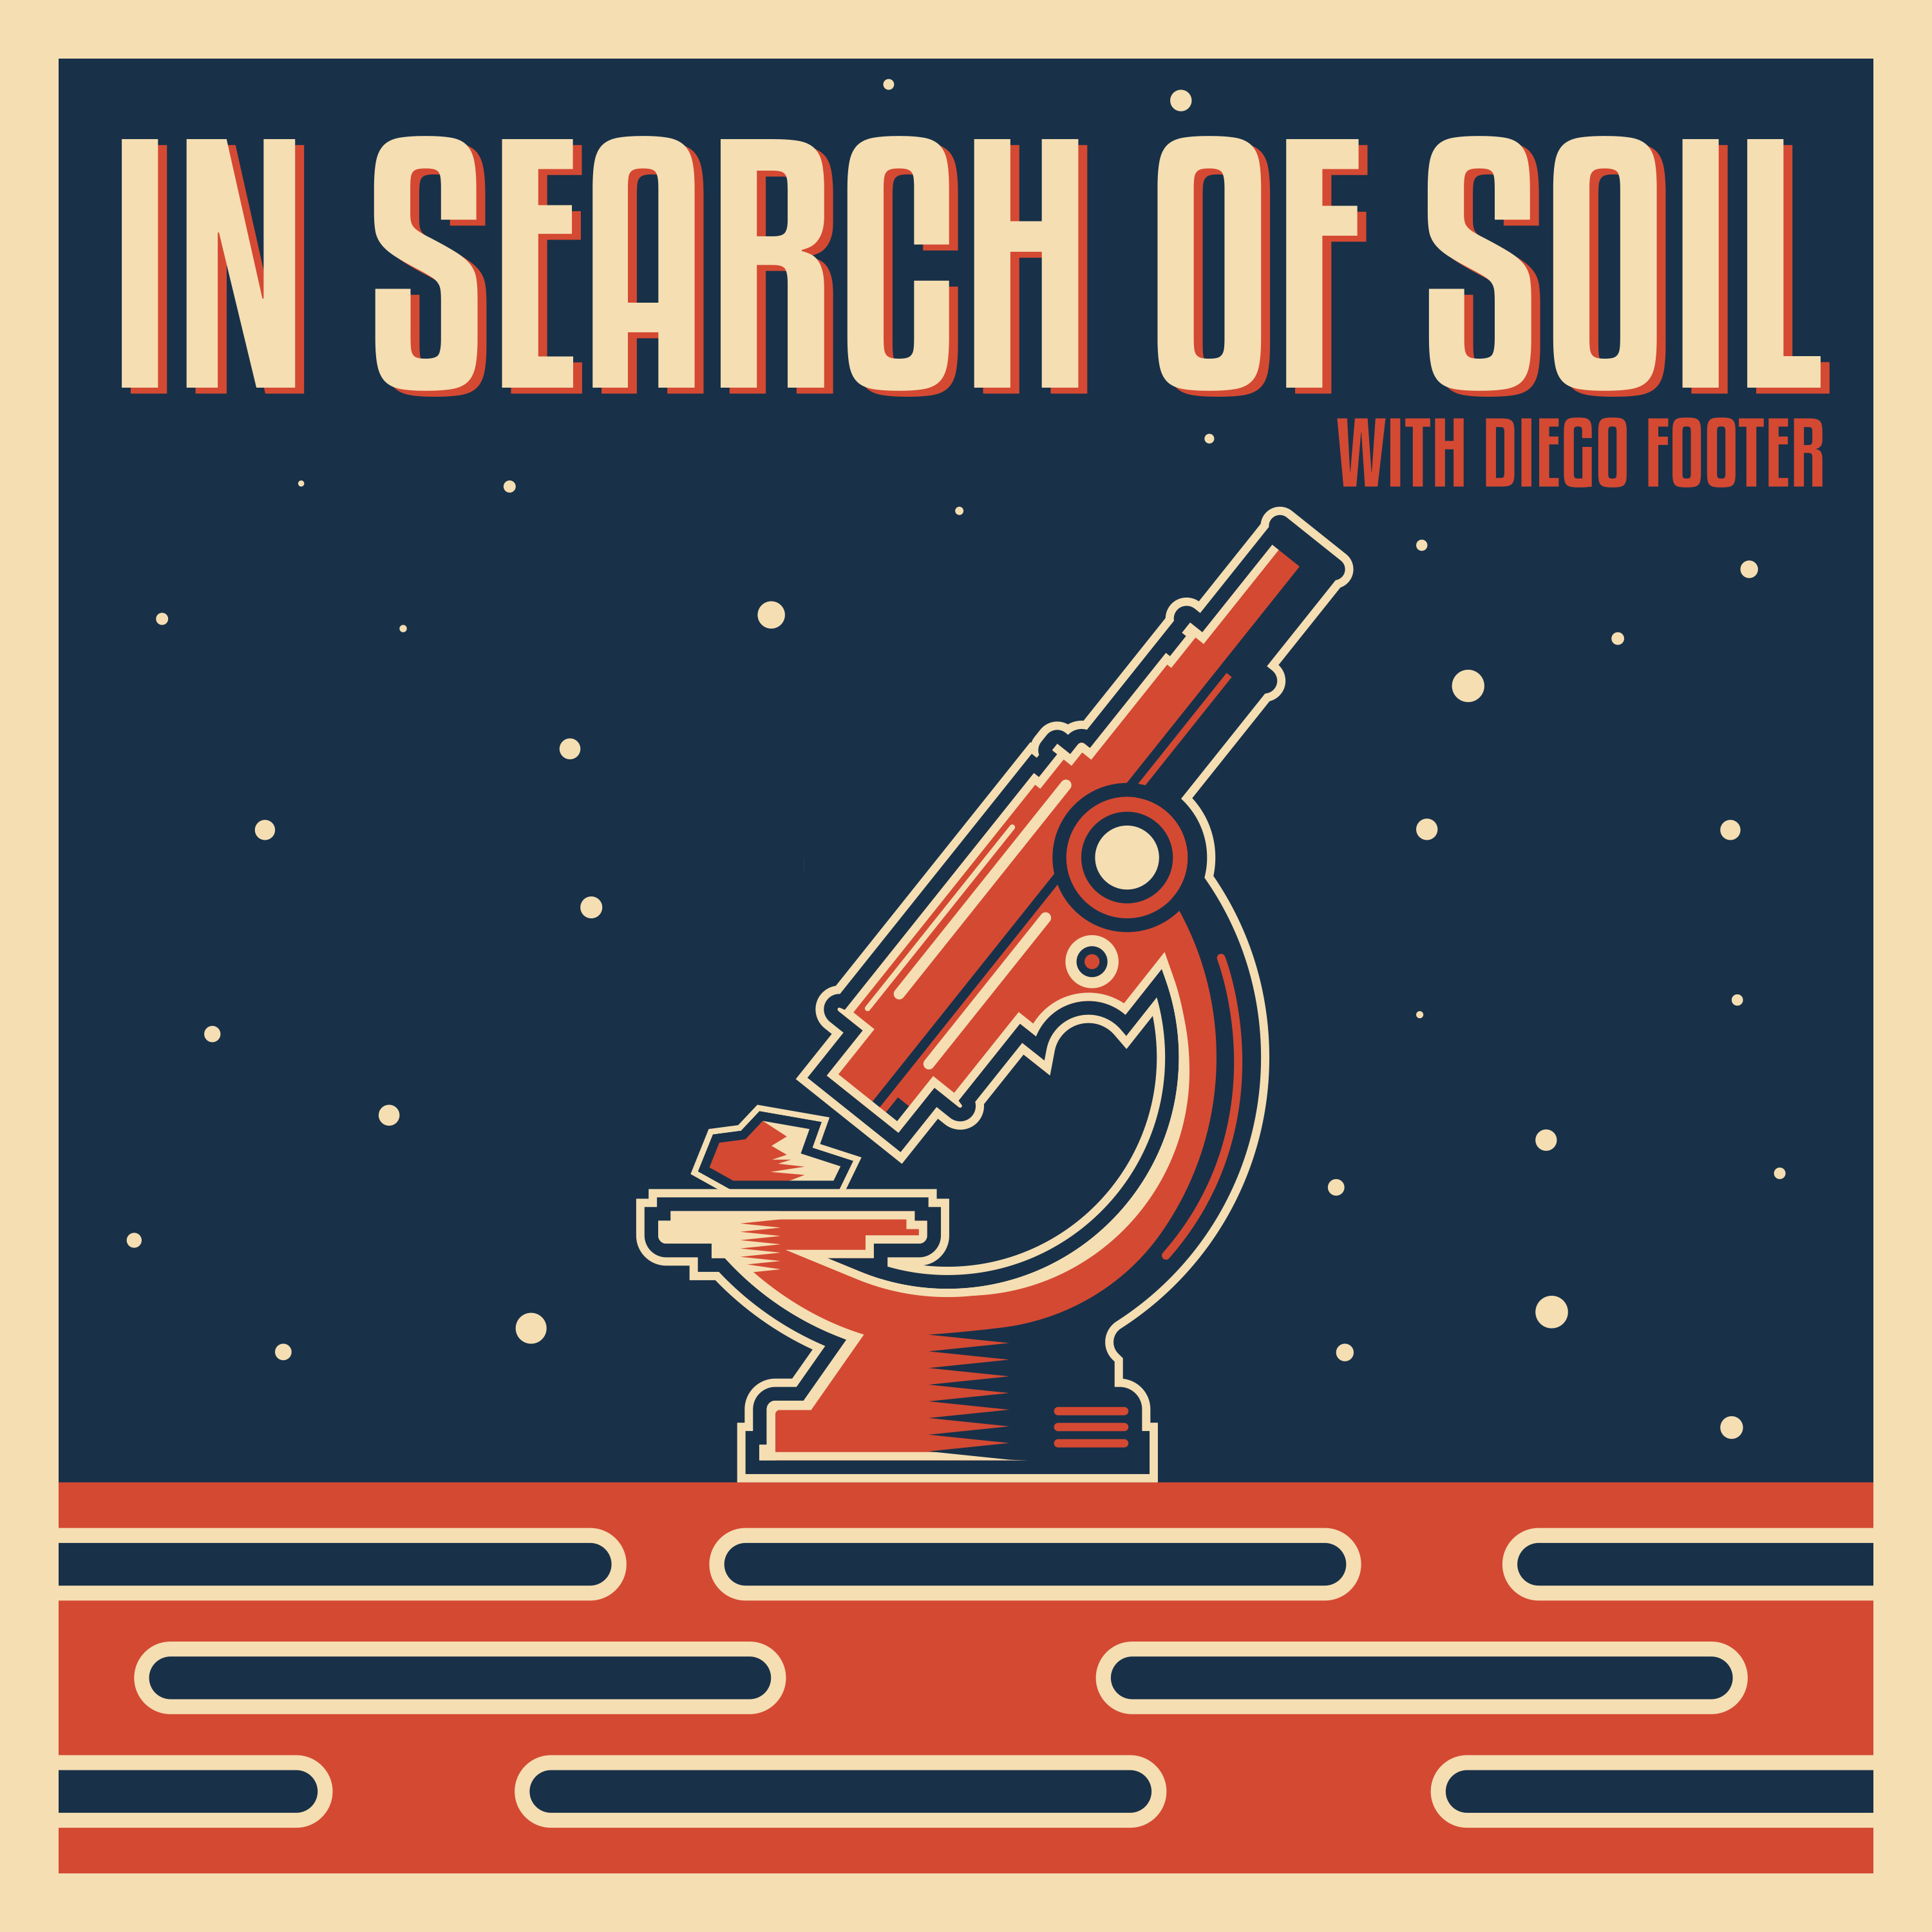 Artwork for In Search of Soil - Why is Some Compost So Bad?